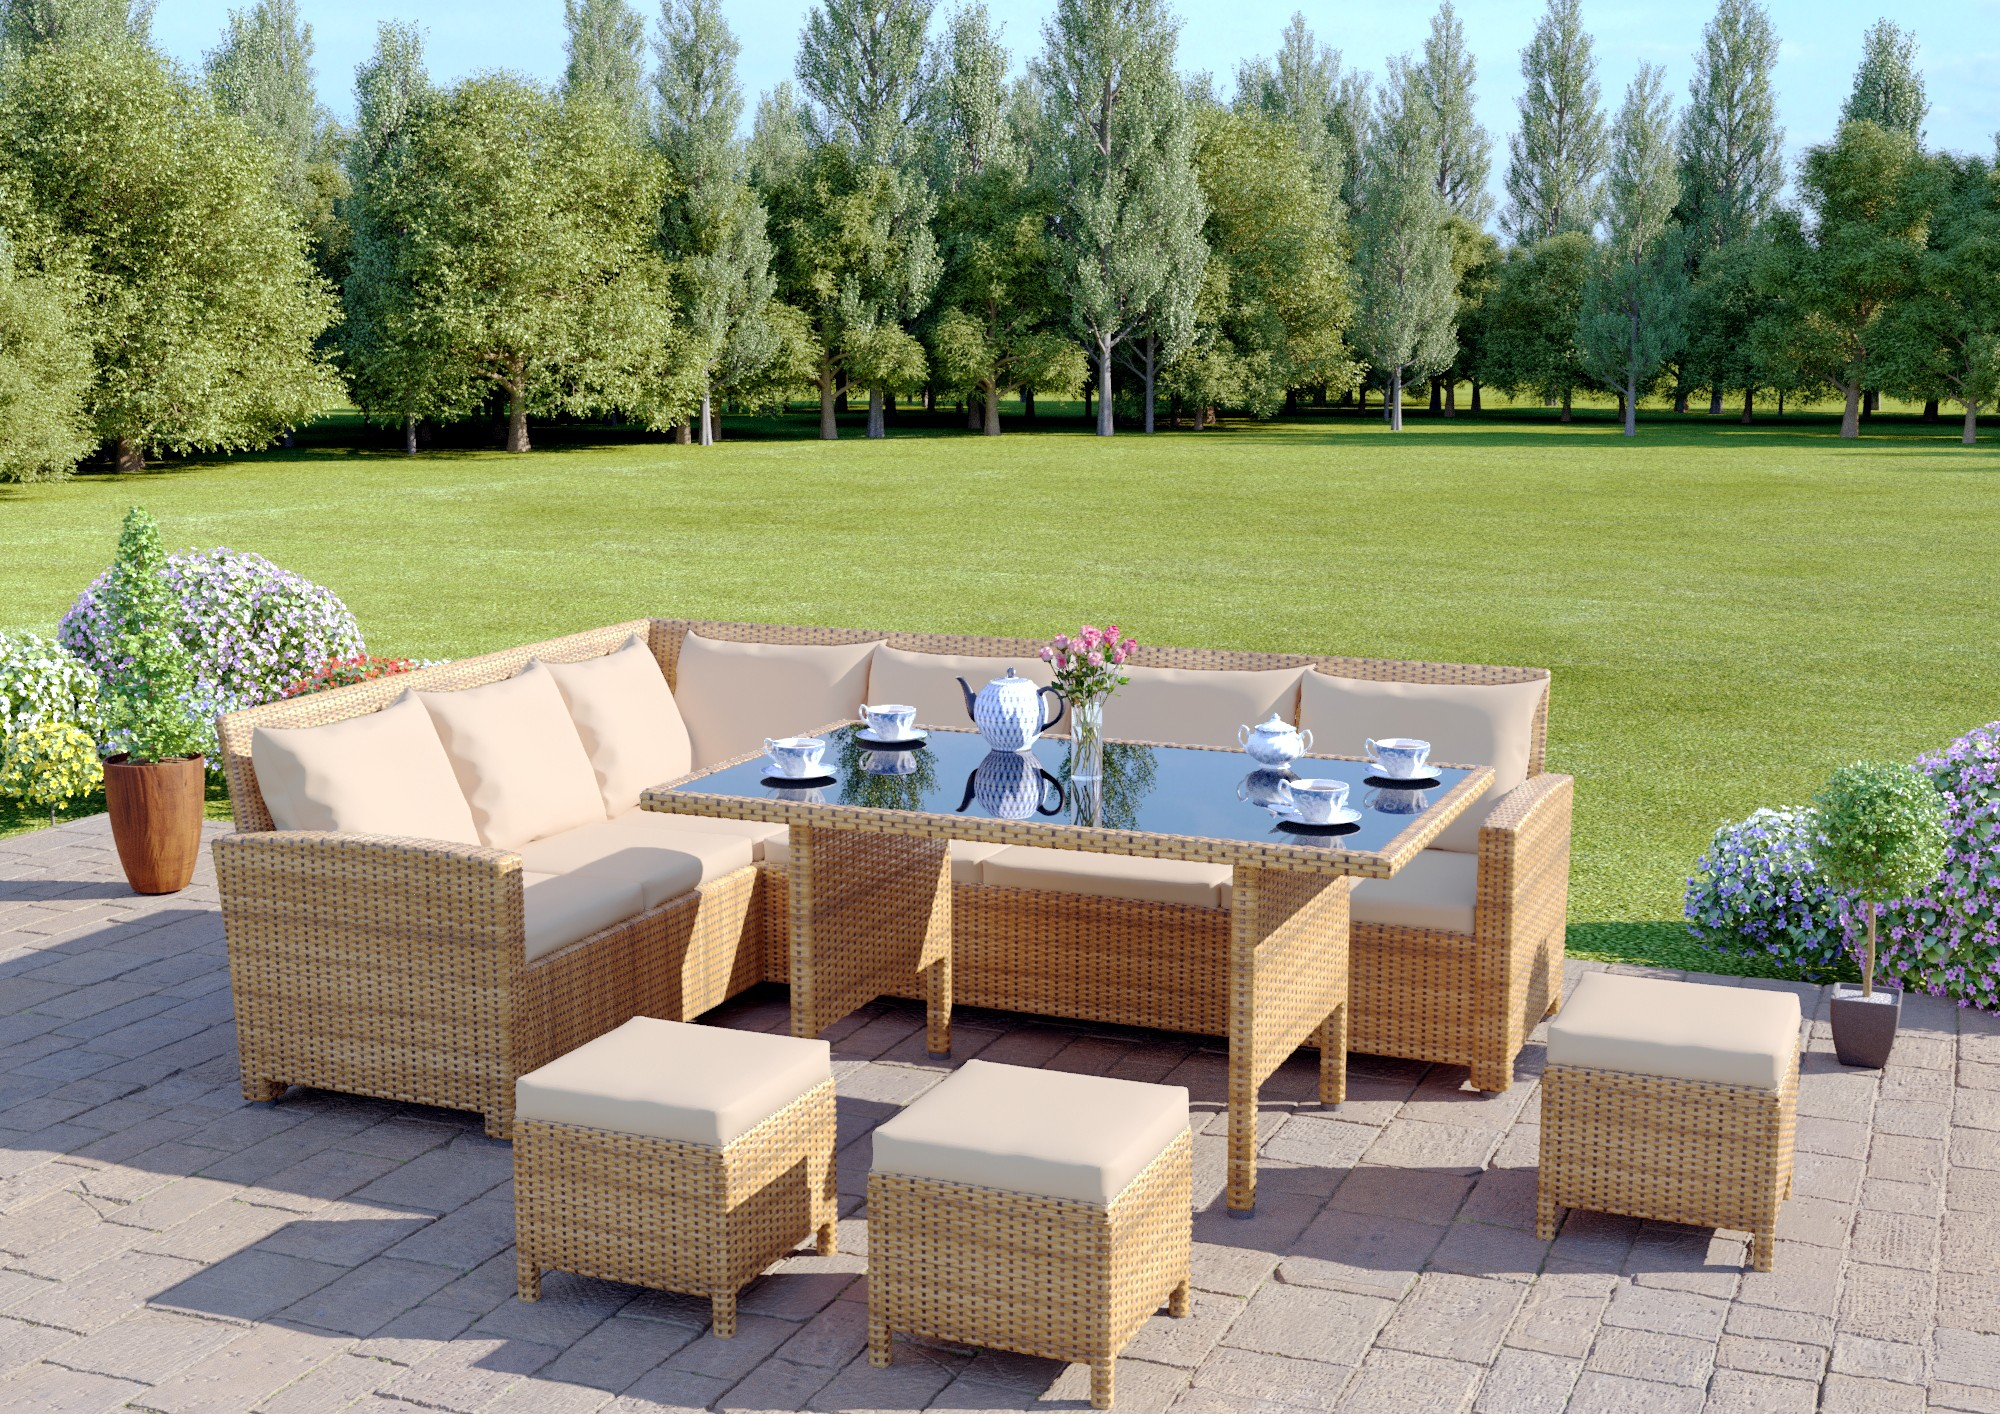 Patio Furniture Table And Chairs 9 Seater Rattan Corner Garden Sofa Dining Table Set In Light Brown With Light Cushions